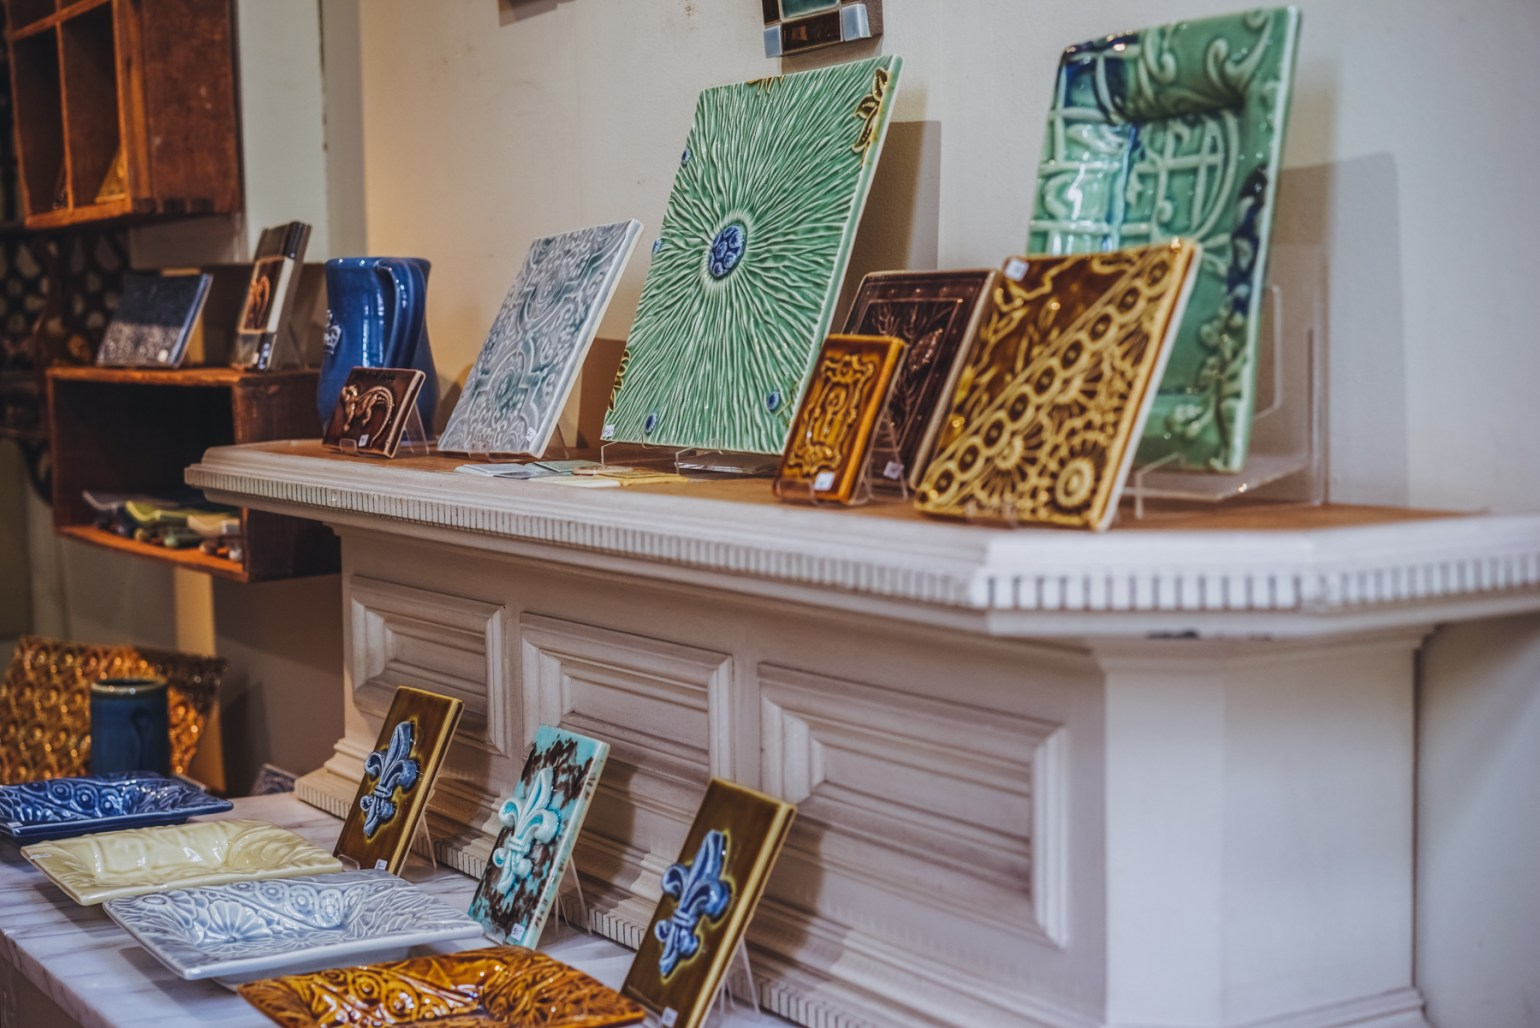 I've been collecting and giving gifts of tiles, plates and bowls and other decorative pieces from Derby Pottery for years. You can watch Mark work in his studio, and even see the original items from which his designs are based off of, showing the real color and craft that many Magazine Street merchants possess.